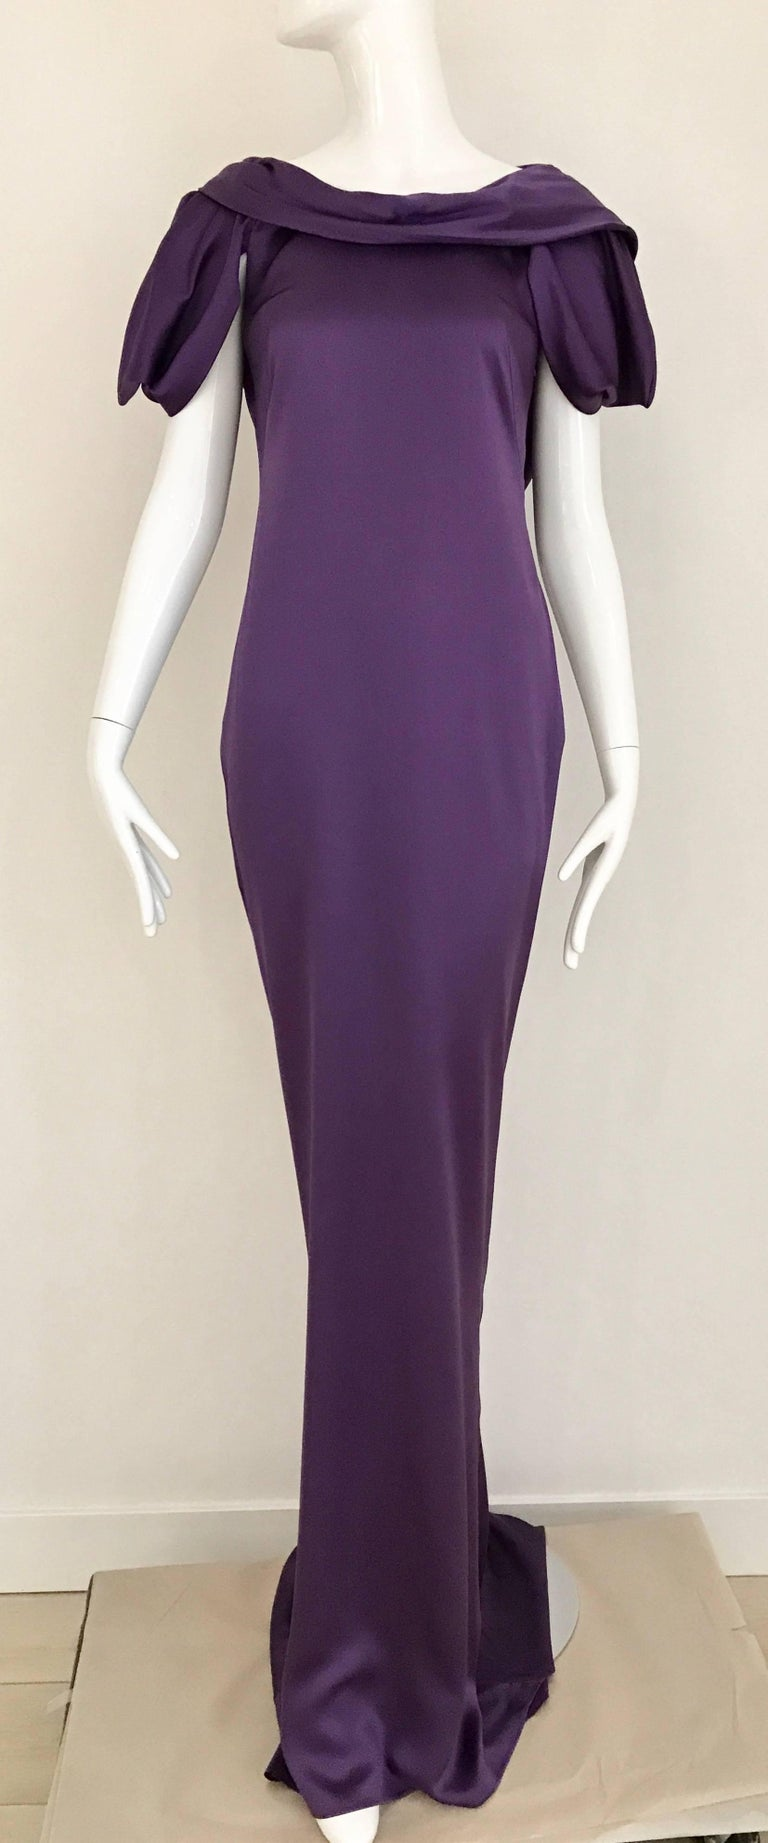 Stunning Alexander McQueen Purple violet silk charmeuse gown with interesting sleeves and exposed bare back. Slightly cowl neck. strap can be removed. Dress zip from the side.  Size Medium / 6 Bust: 36 inch ( back is open) / Waist: 30 inch Hip: 36.5